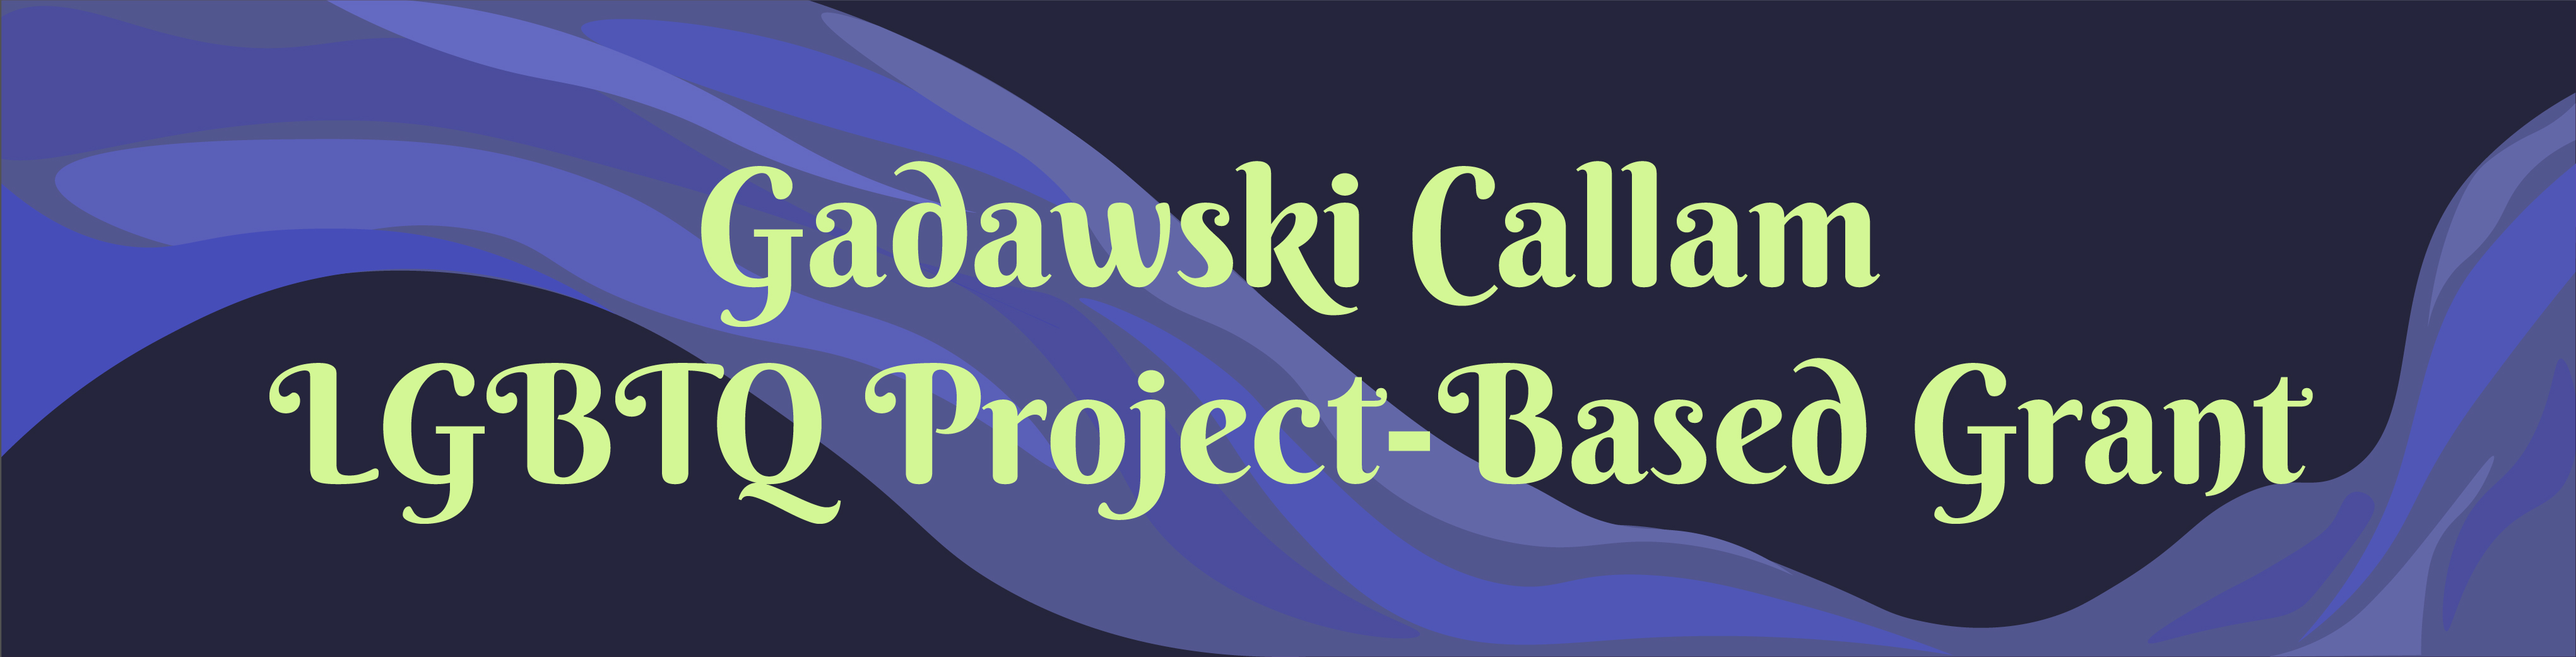 Gadawski Callam Project-Based Grant